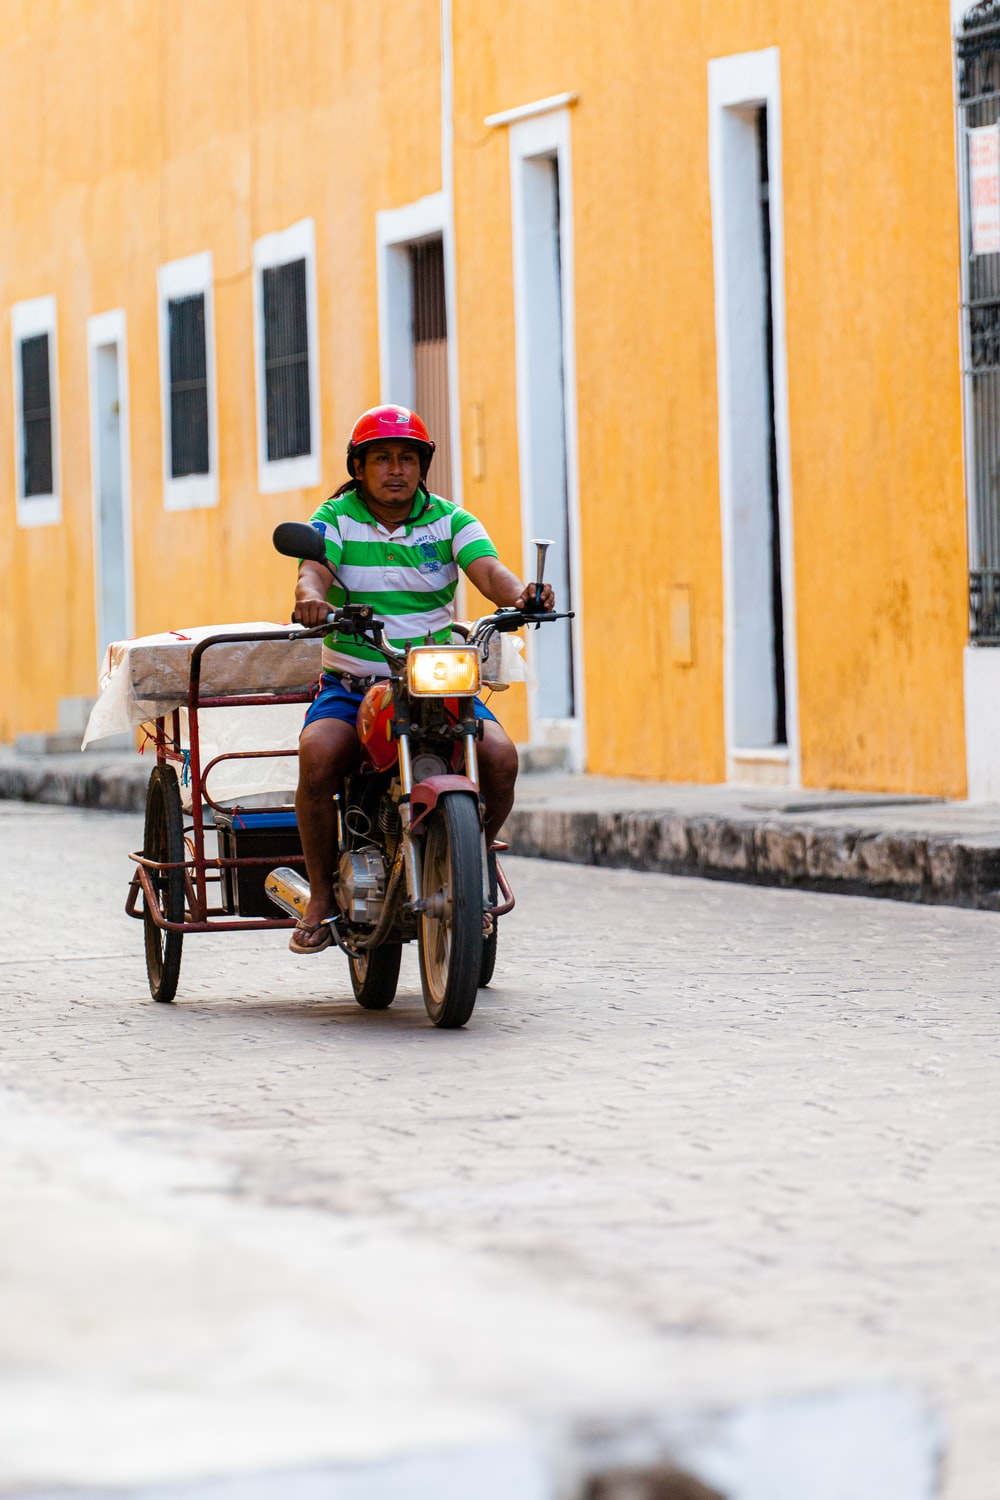 boy in green jacket riding on brown and black trike during daytime